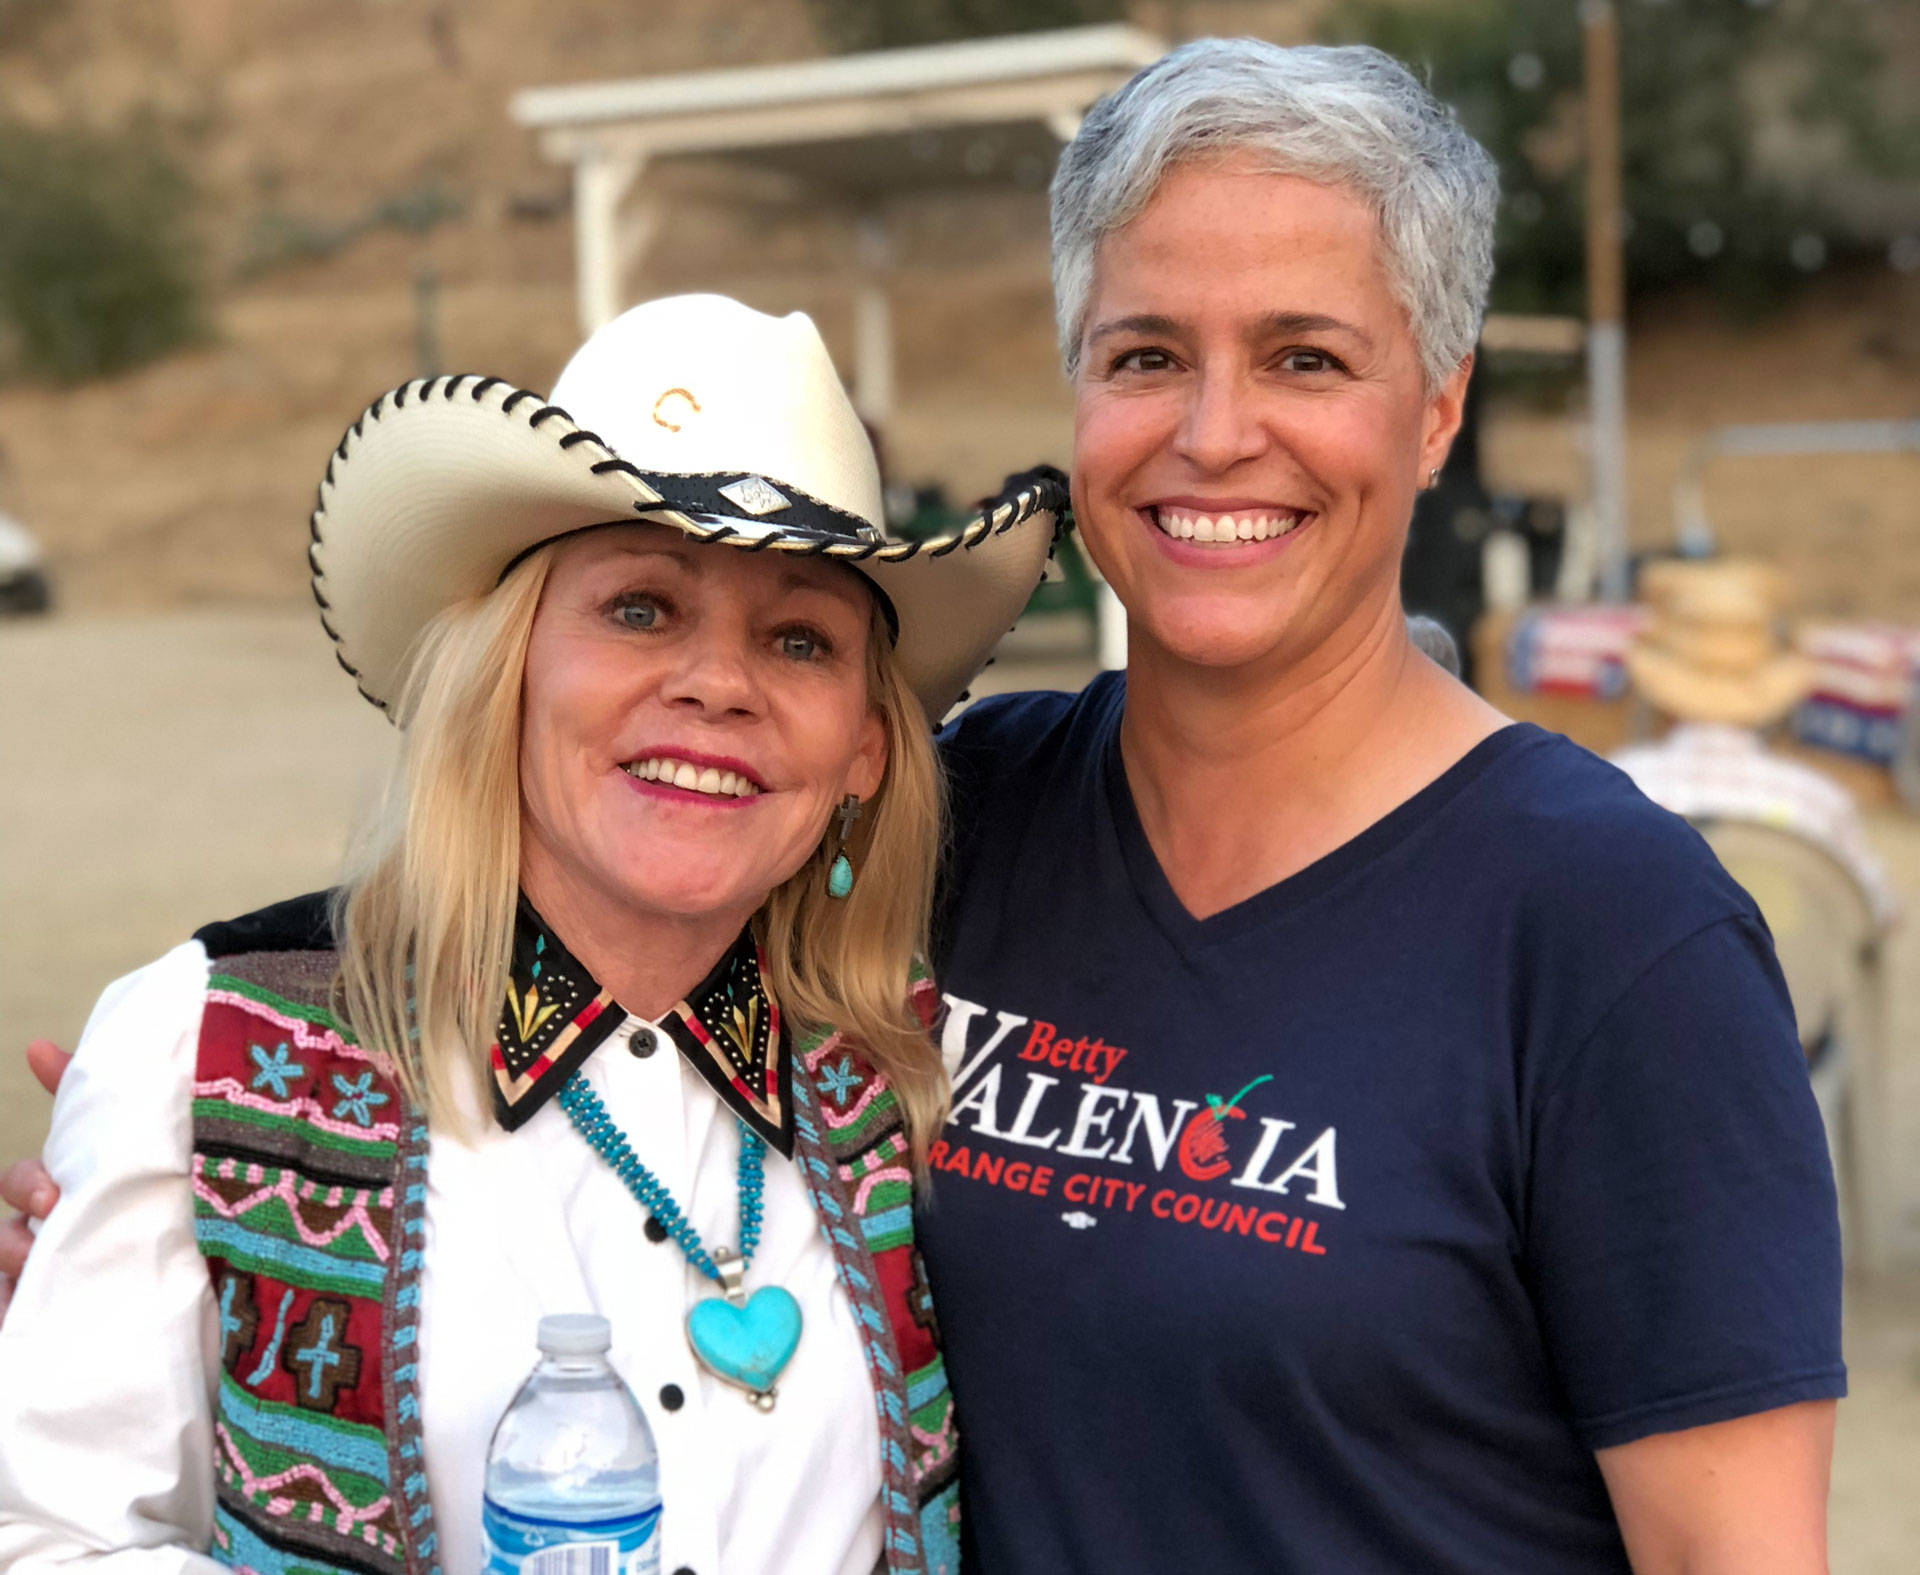 Betty Valencia (right) with a supporter in the city of Orange, California. Courtesy of Betty Valencia